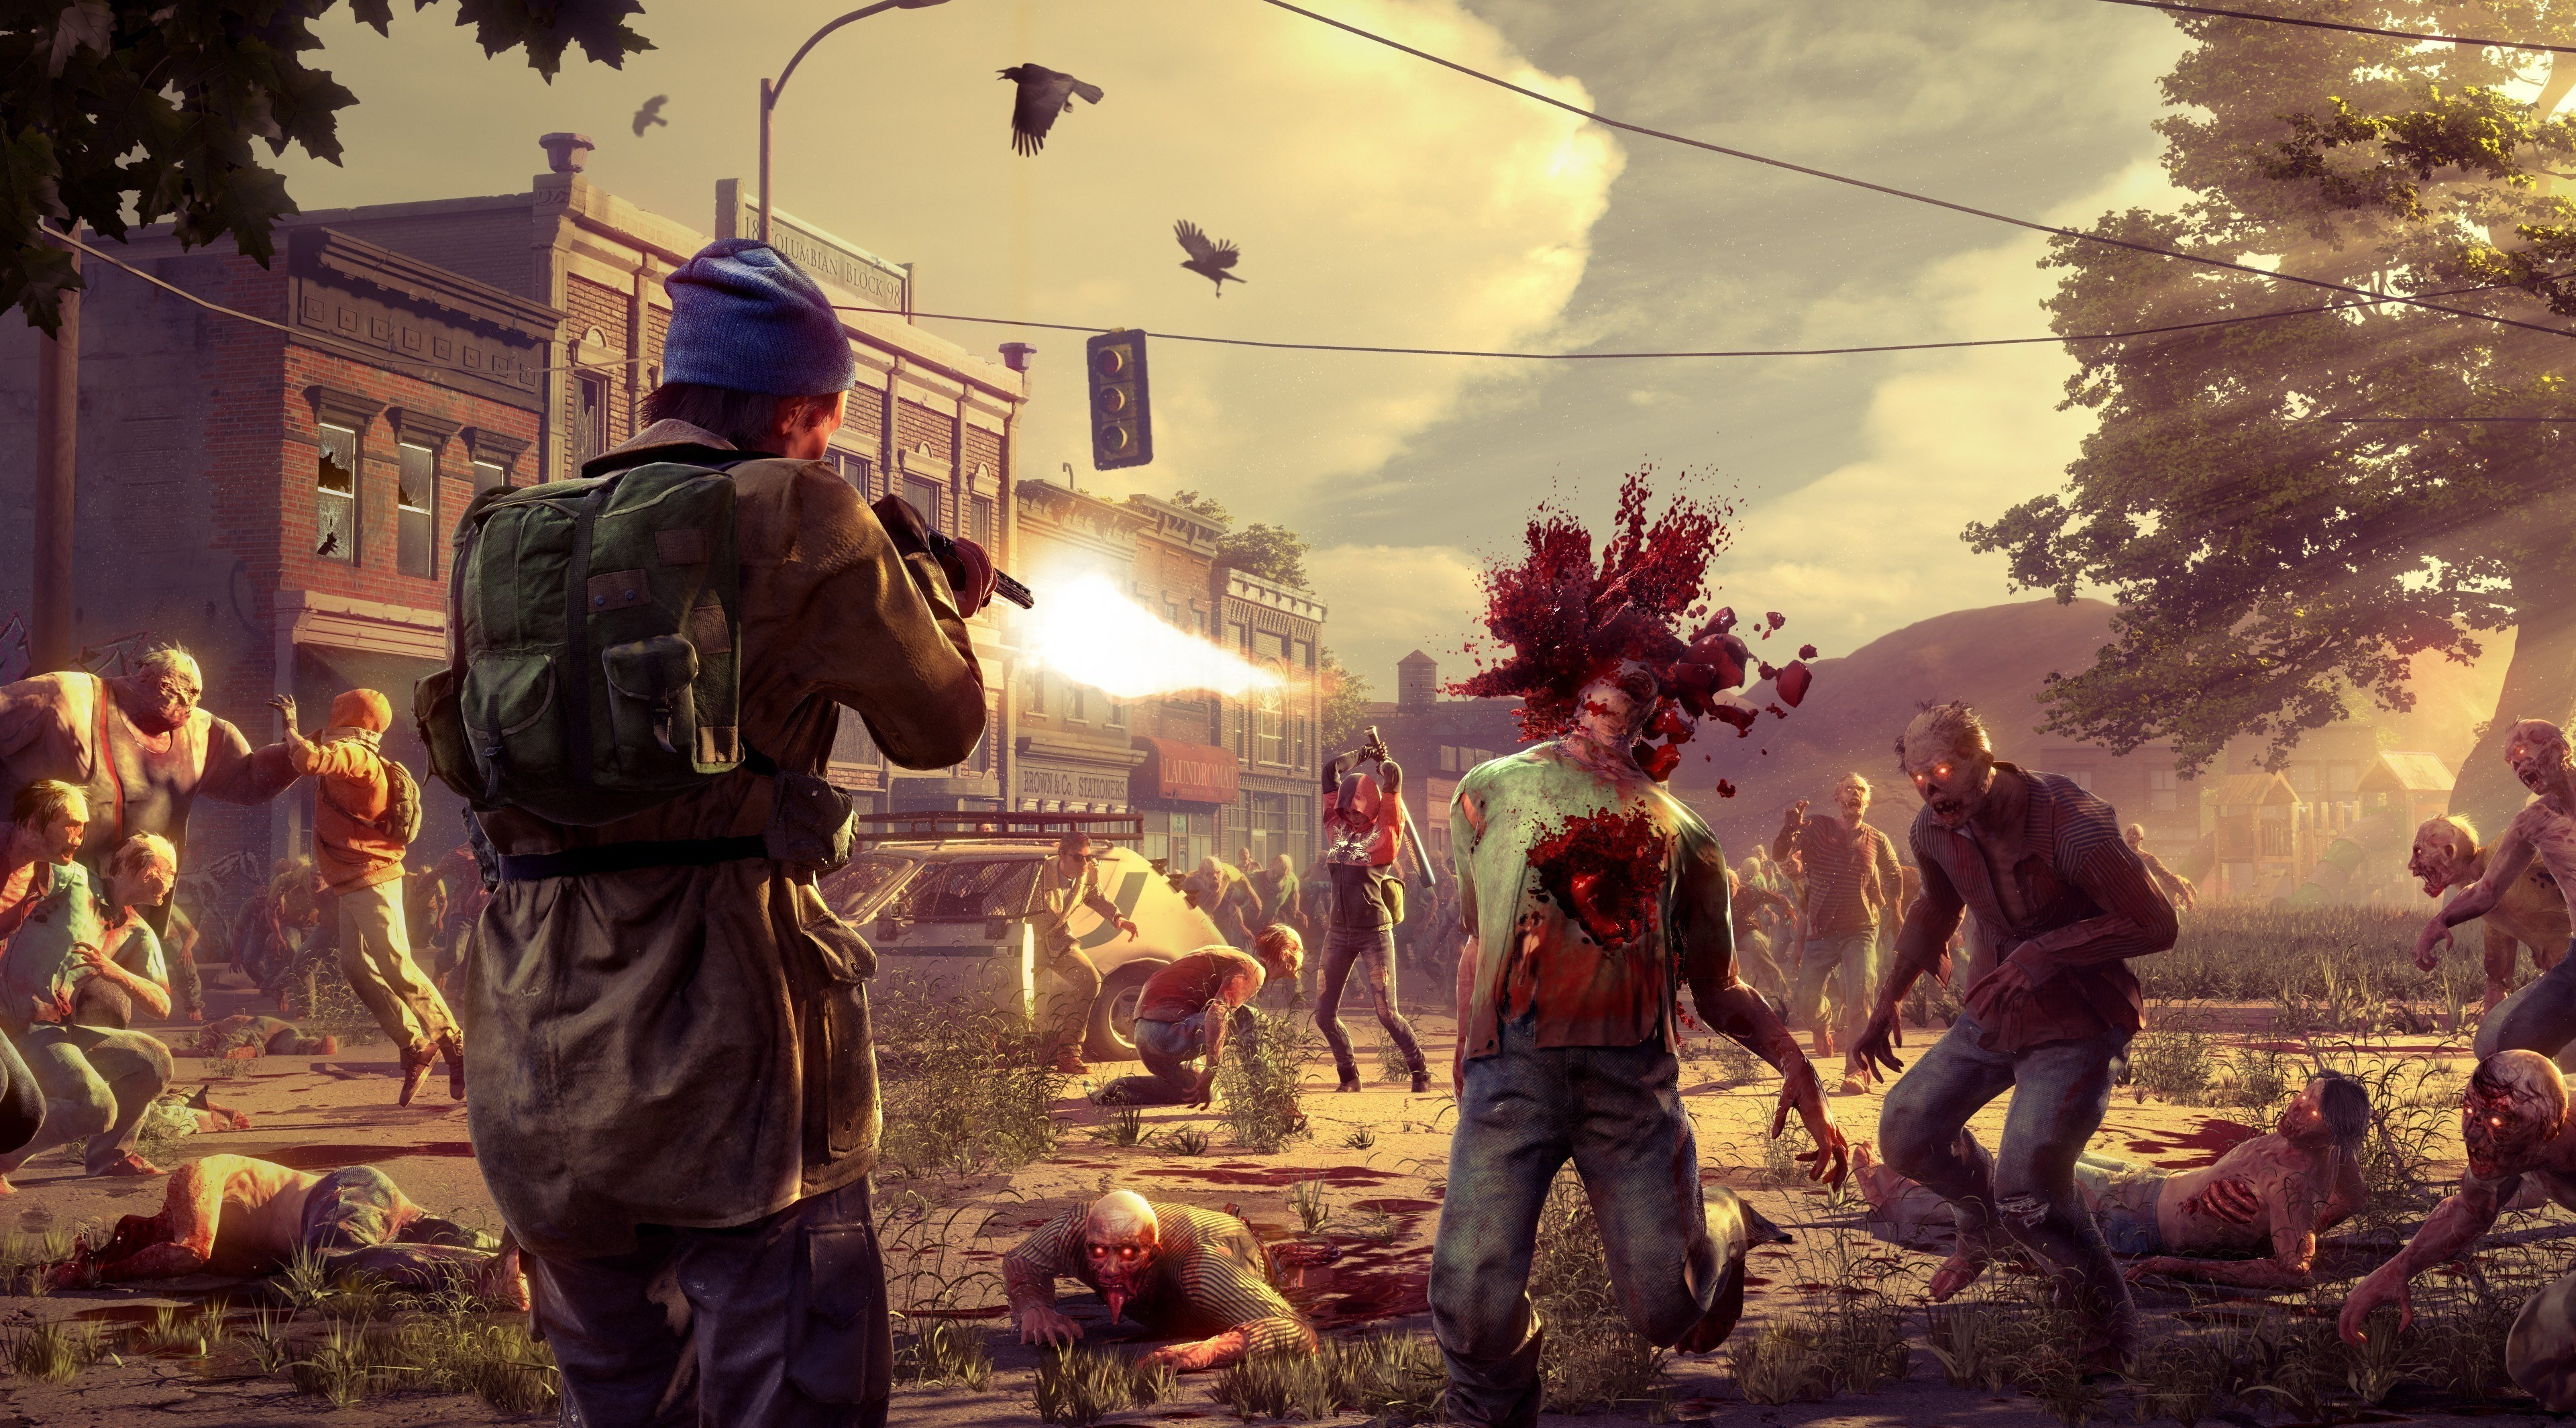 State Of Decay 2 Hd Wallpaper Background Image 3840x2128 Id